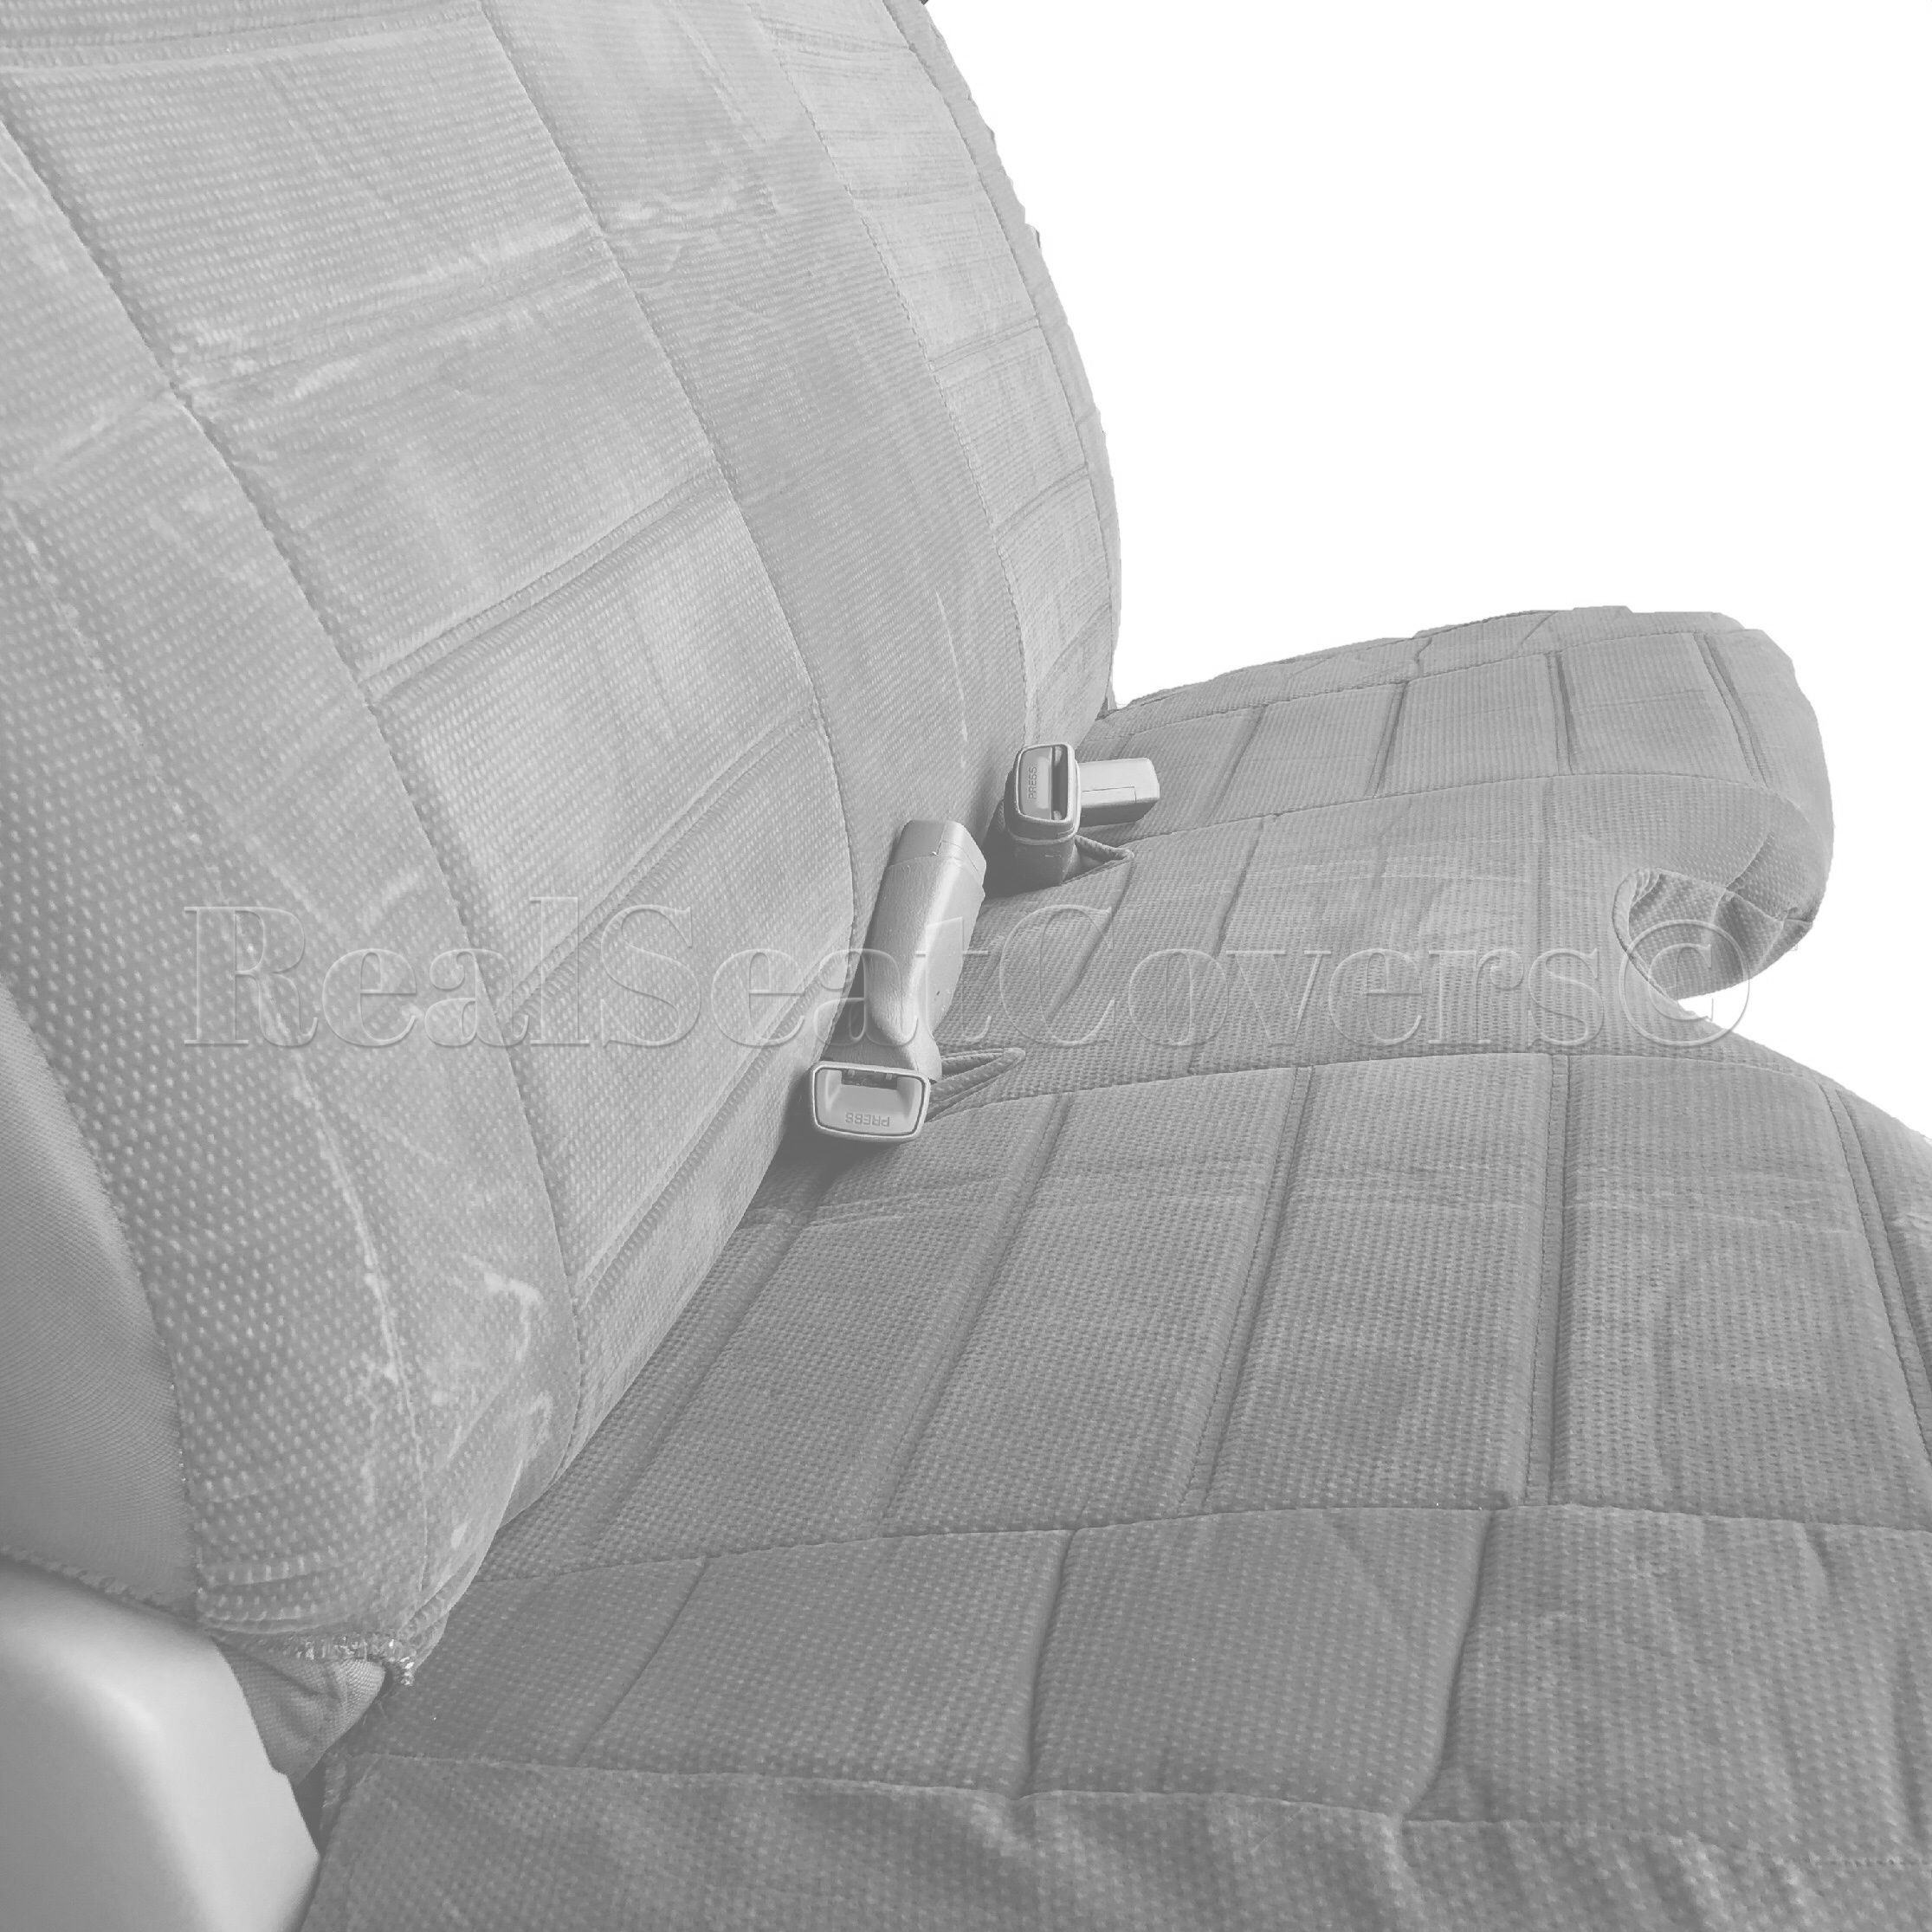 Enjoyable Rsc Us Automotive Grade A27 Chevy S10 Gmc Sonoma S15 Bench Seat Covers Molded Headrest 5 To 7 Shifter Cutout Beige Pdpeps Interior Chair Design Pdpepsorg